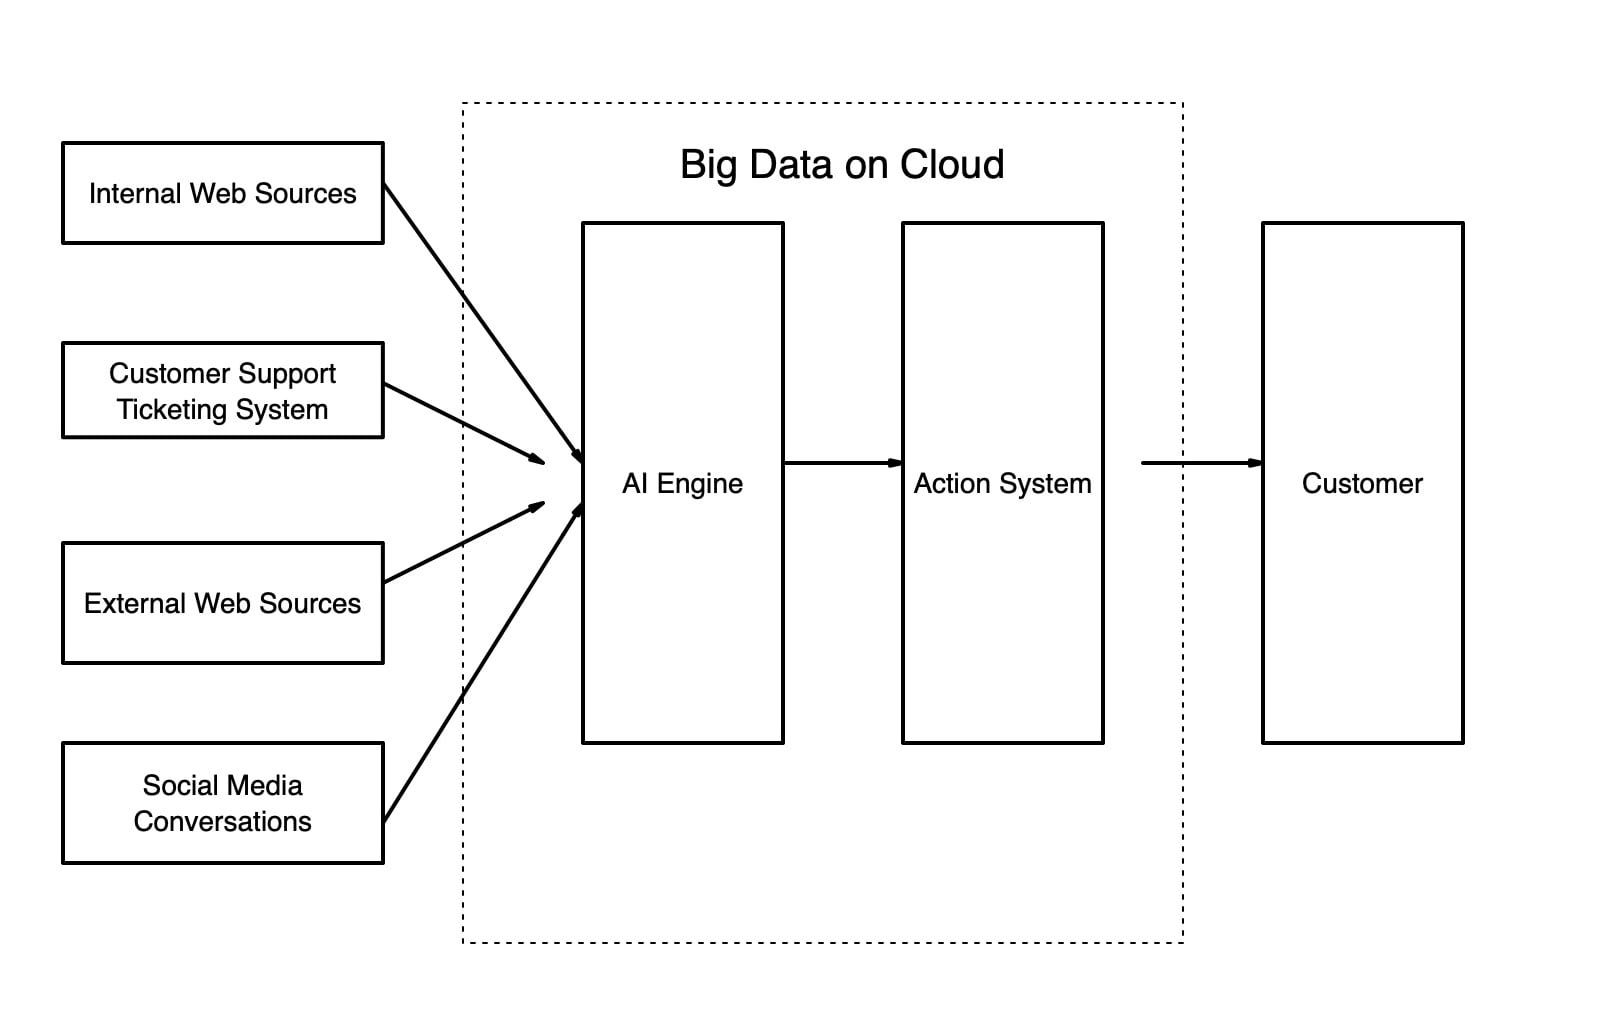 a very high-level diagram and the steps about how this Big Data system could work: